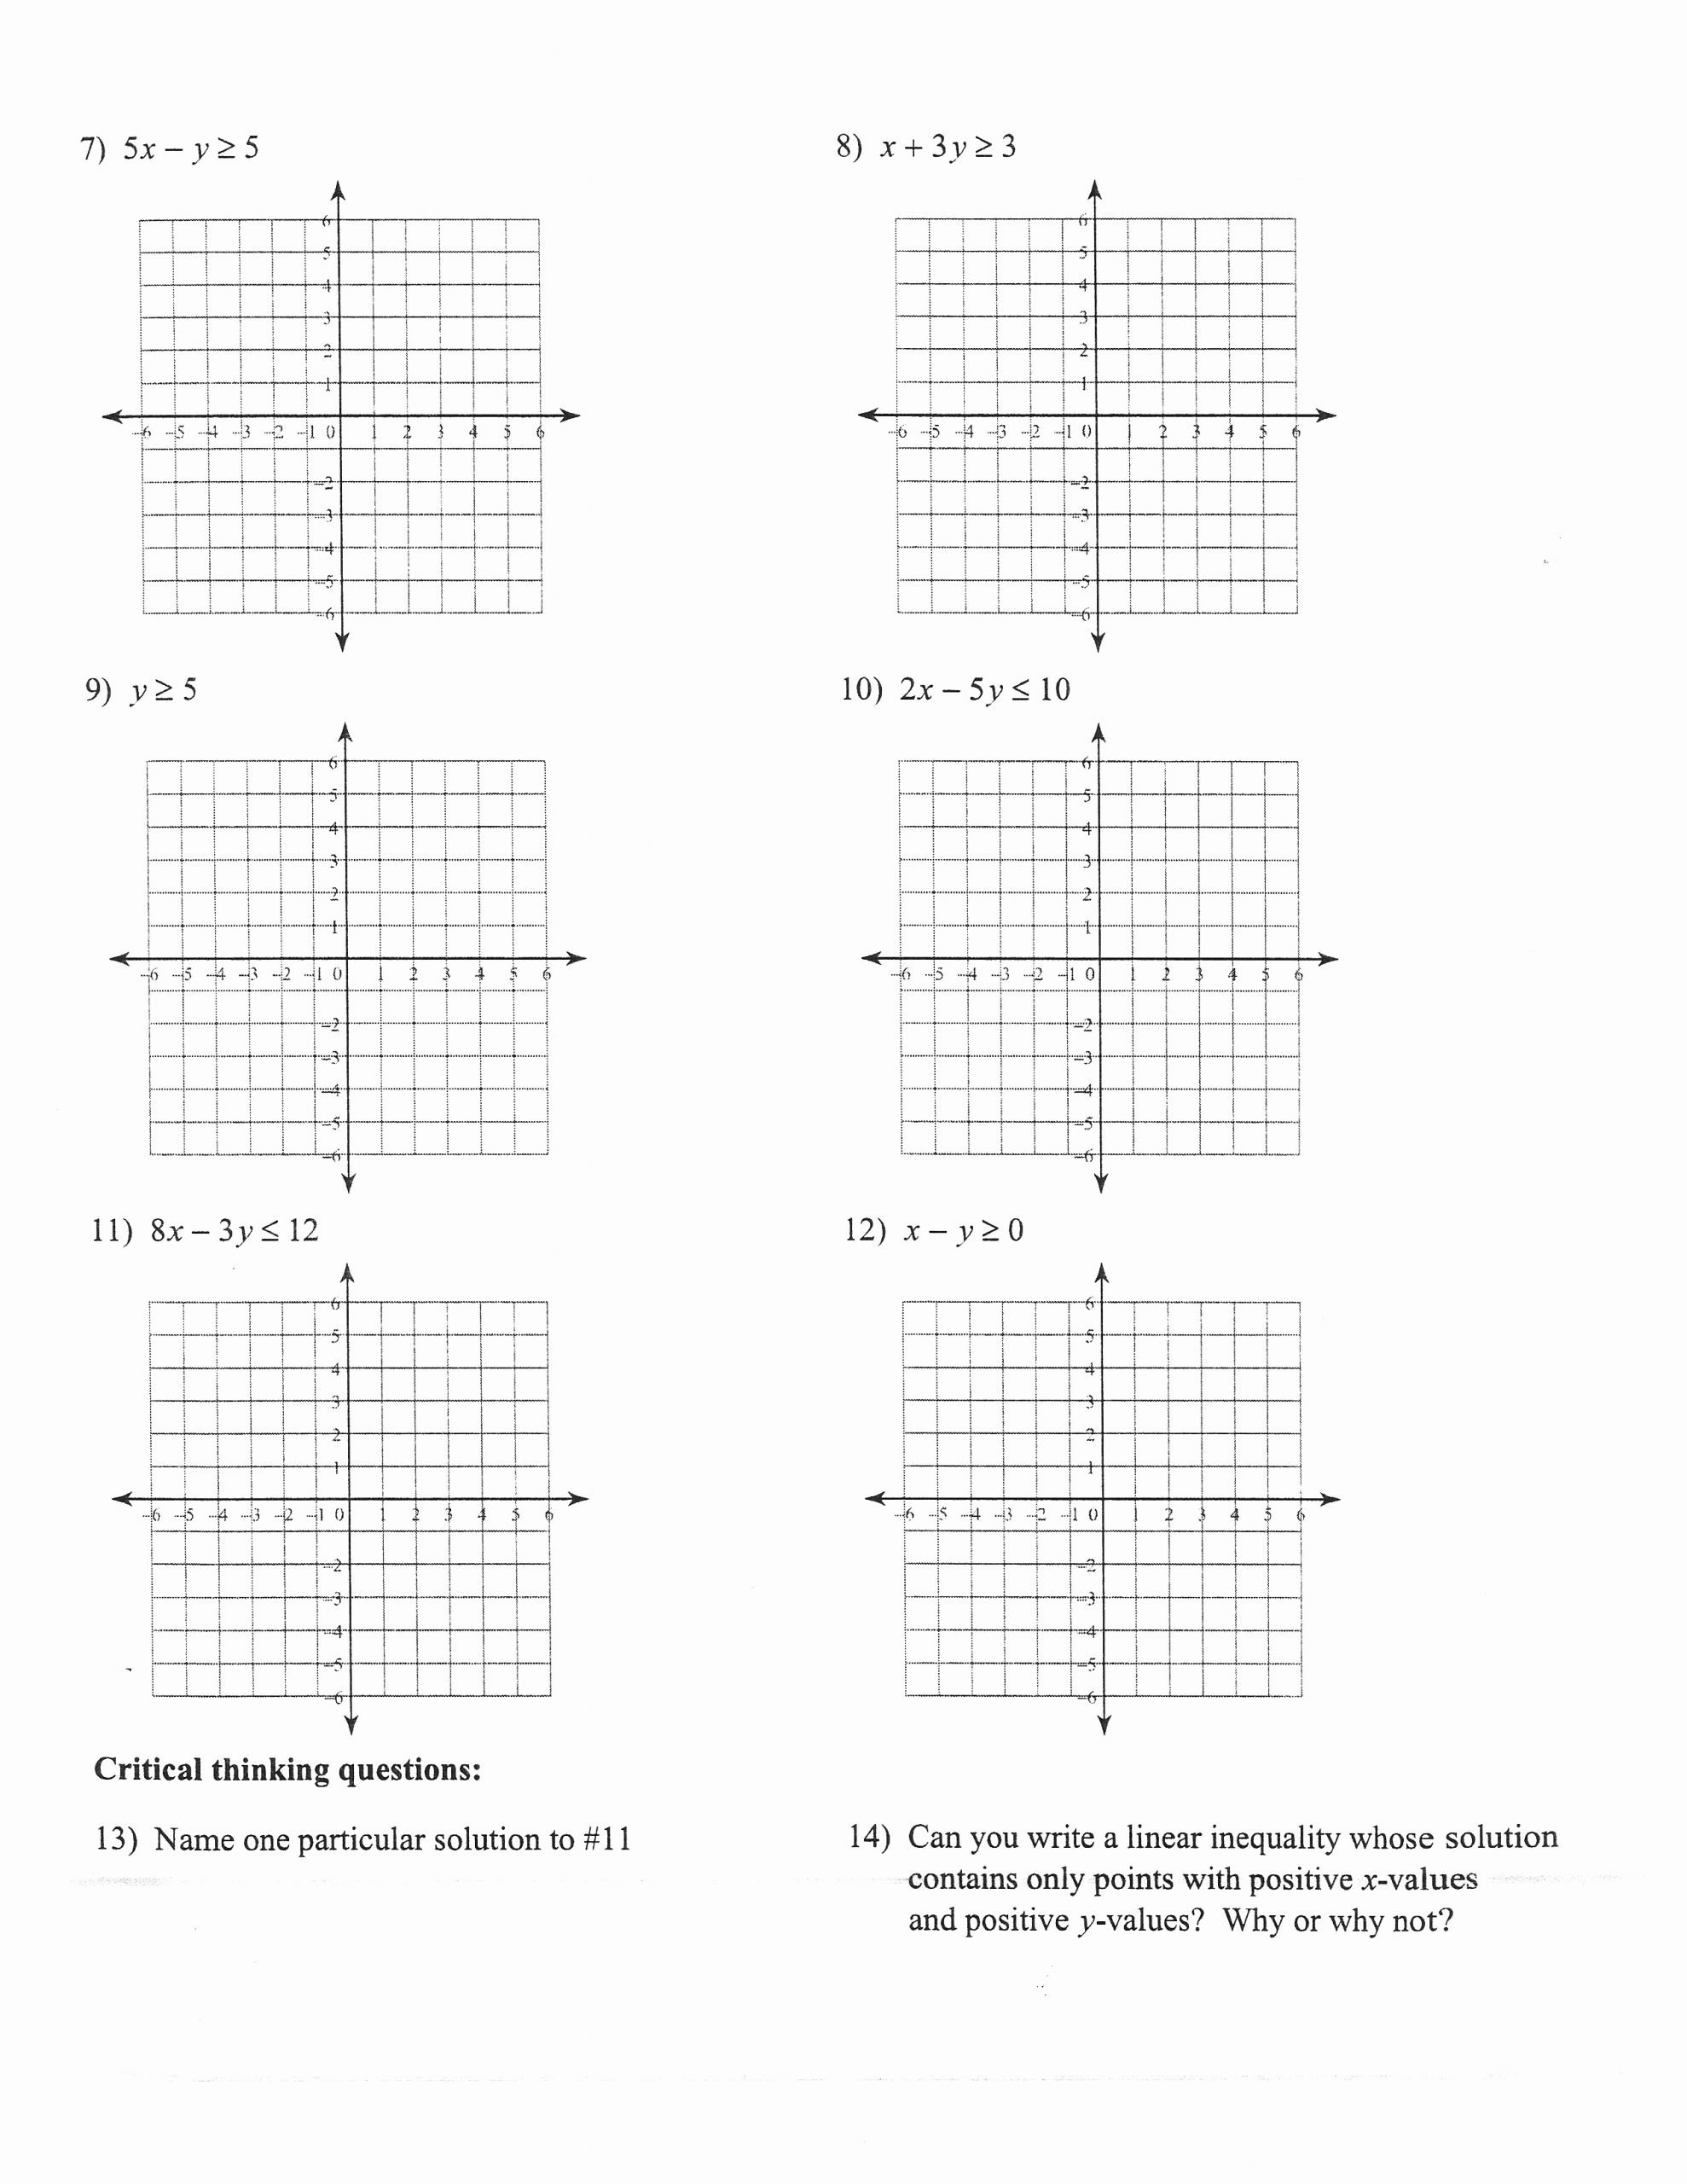 Graphing Linear Inequalities Worksheet Answers Free 32 Graphing Linear Inequalities Worksheet Answers